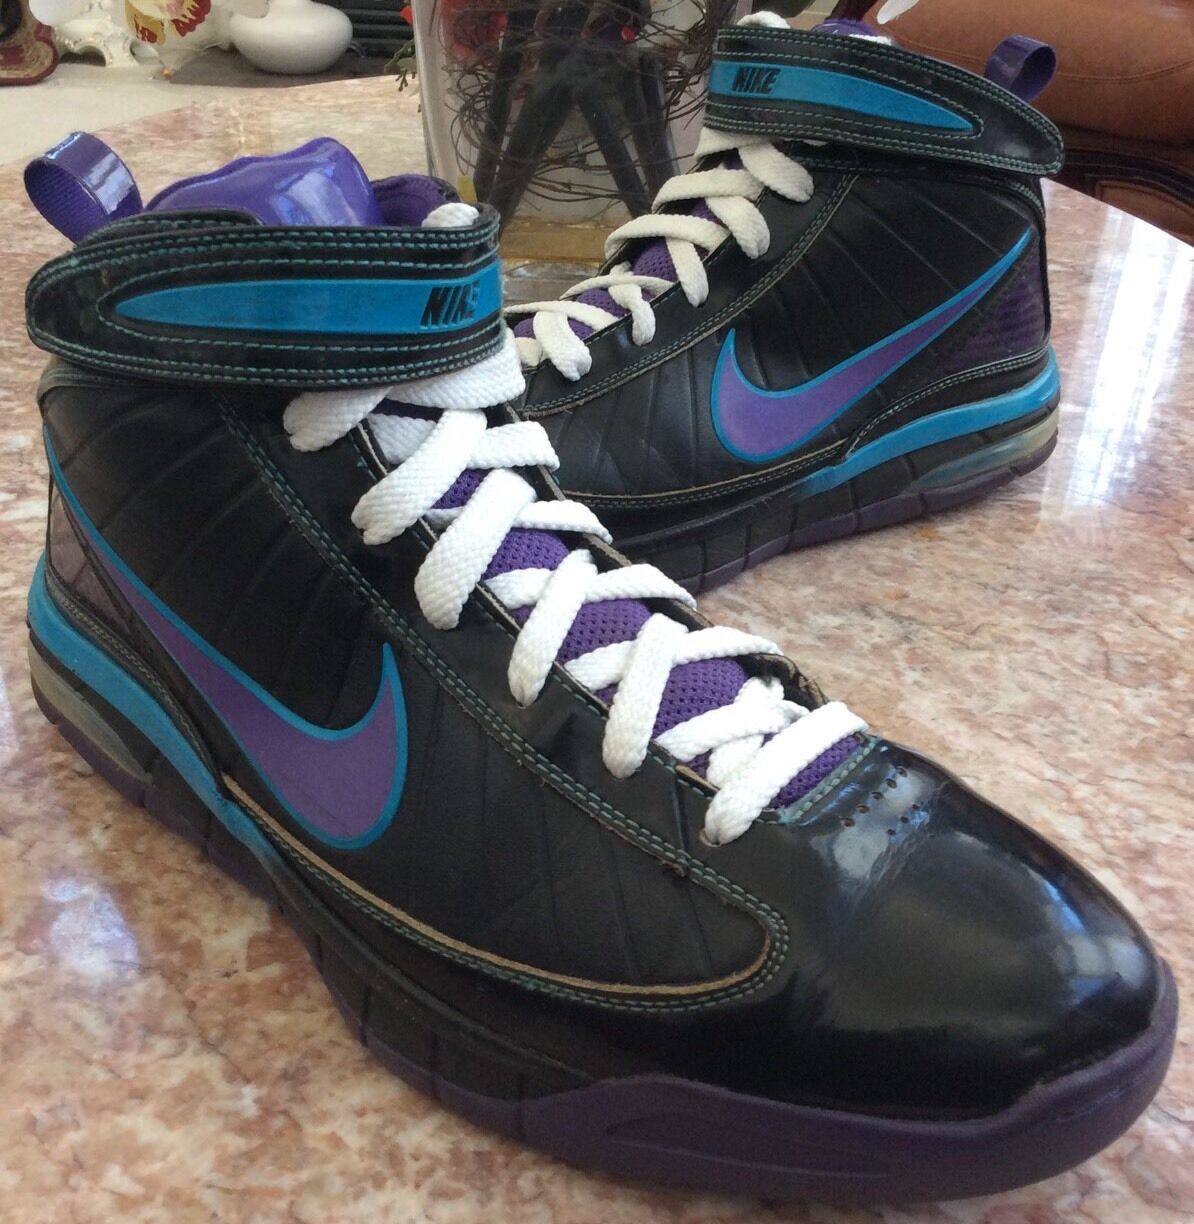 Nike Air Max Rise Supreme Orleans Hornets David West PE Size 11.5, 398261-002